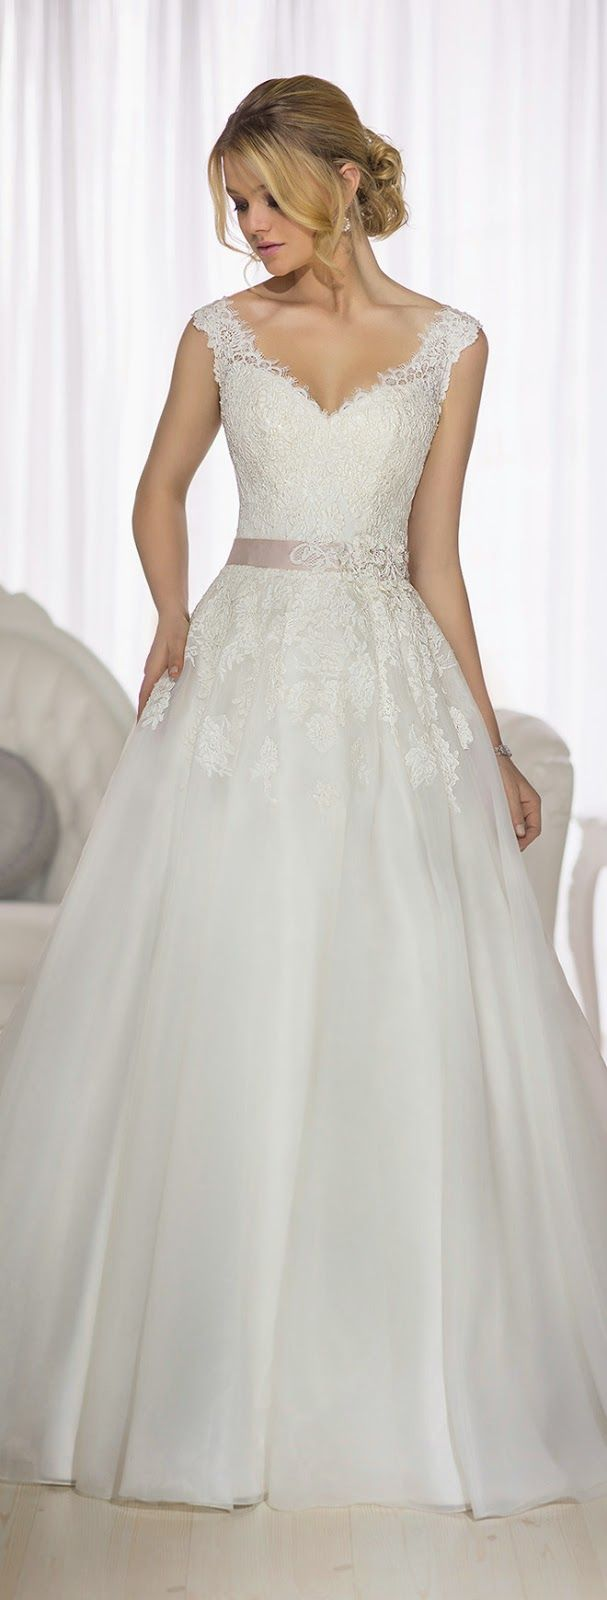 best i do images on pinterest gown wedding dream wedding and